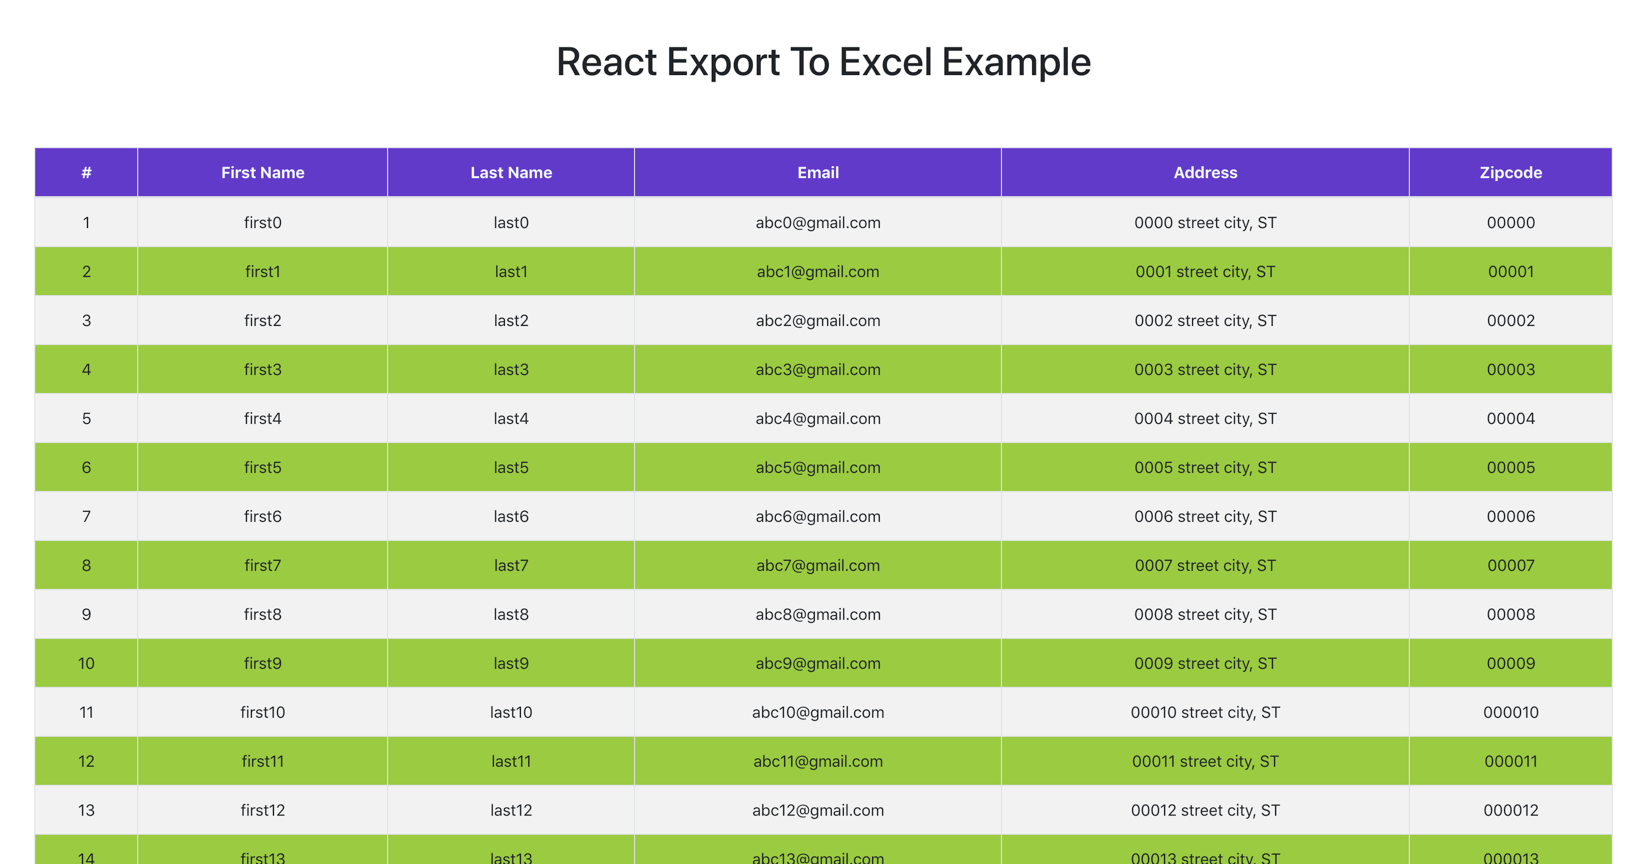 Exporting Data to Excel with React - Bits and Pieces